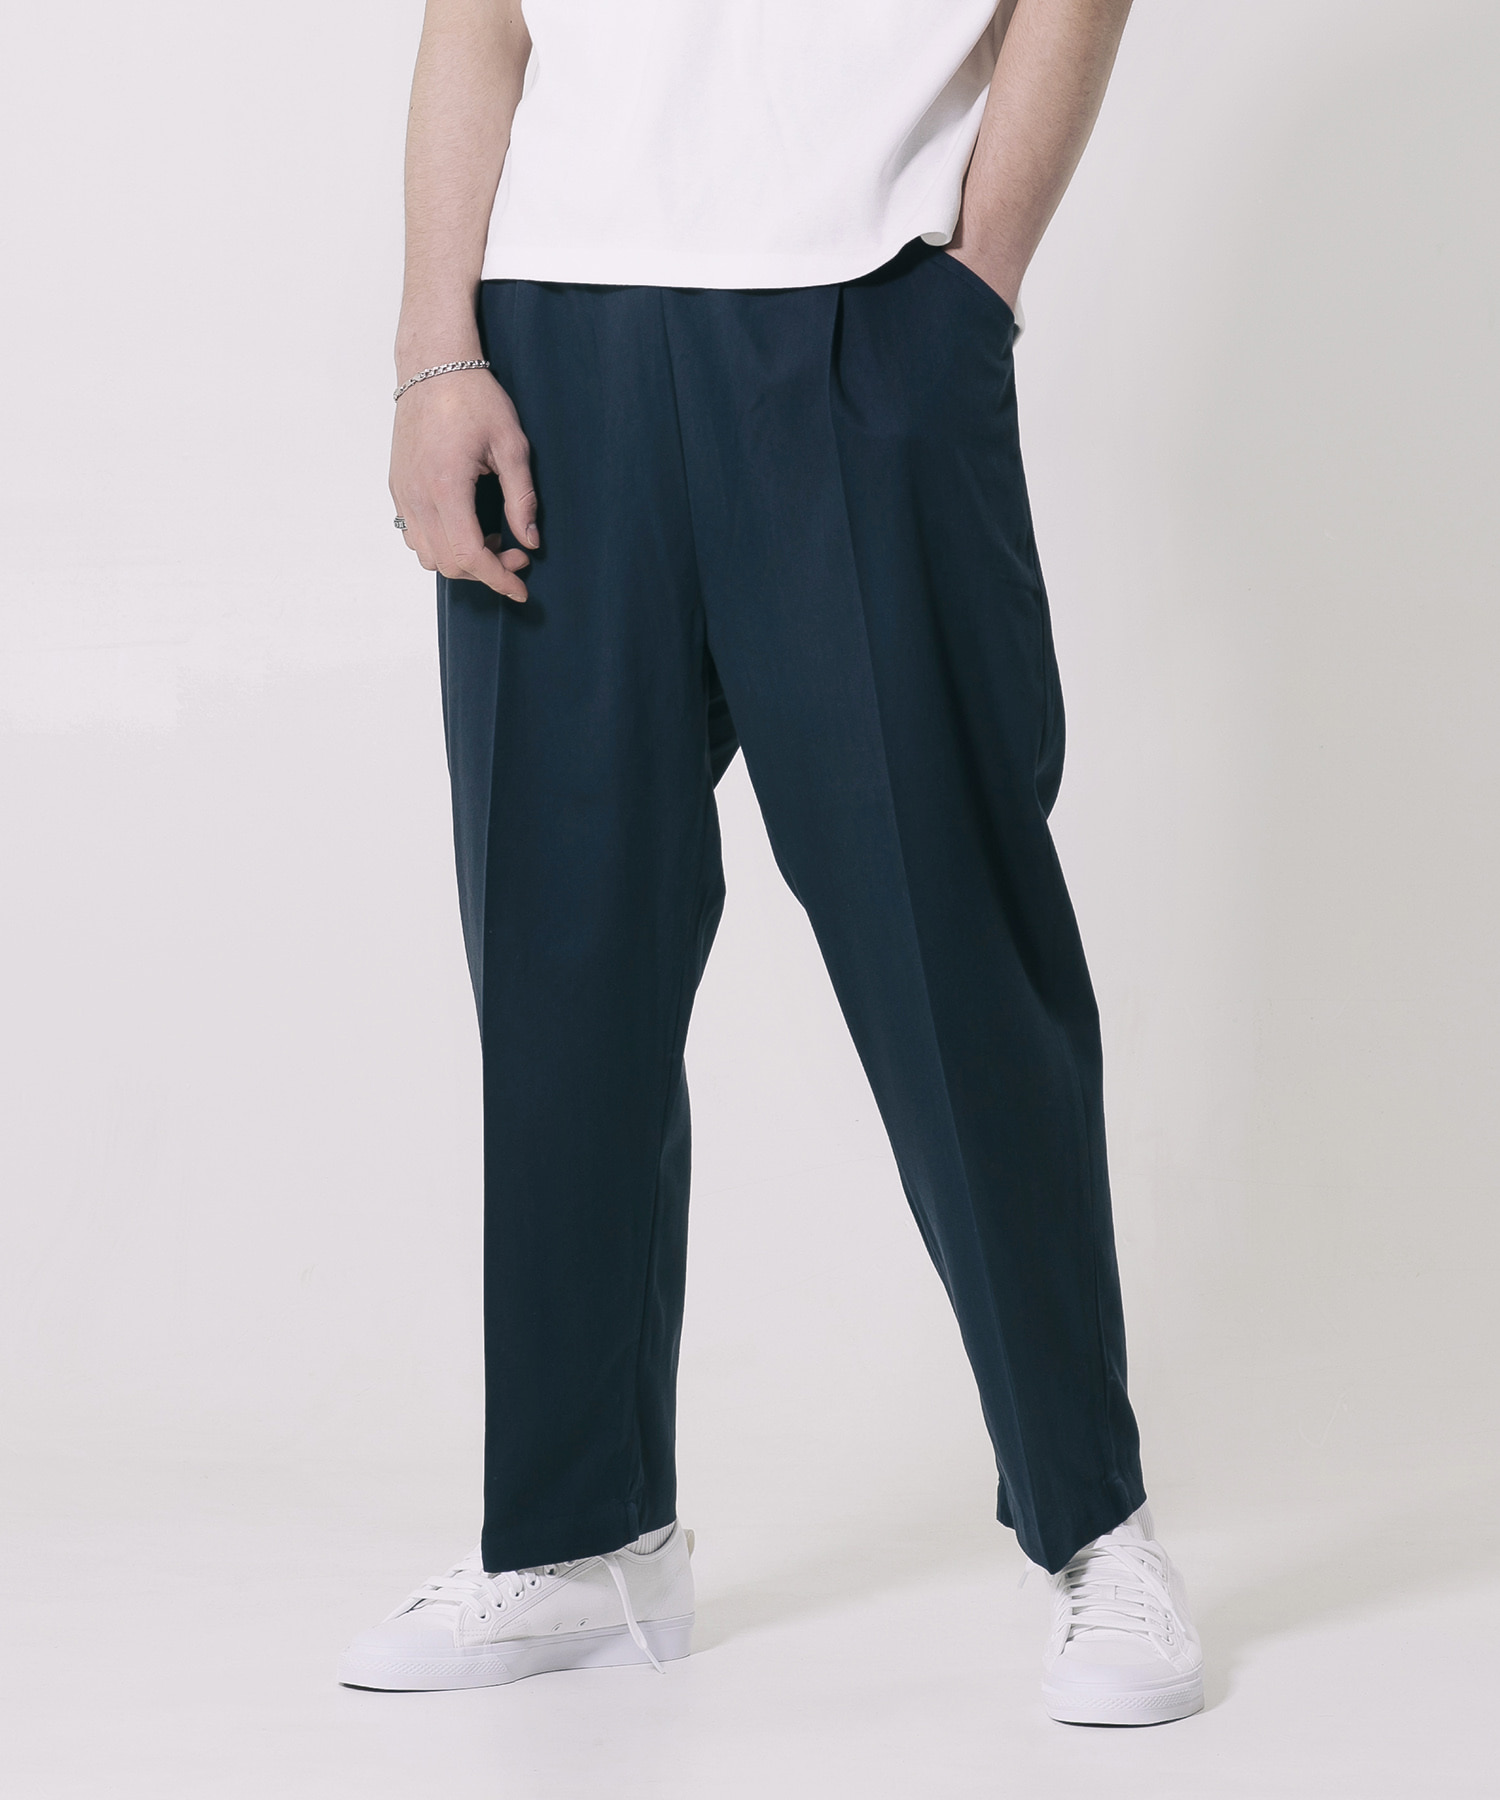 TENSELL SEMI WIDE SLACKS - NAVY